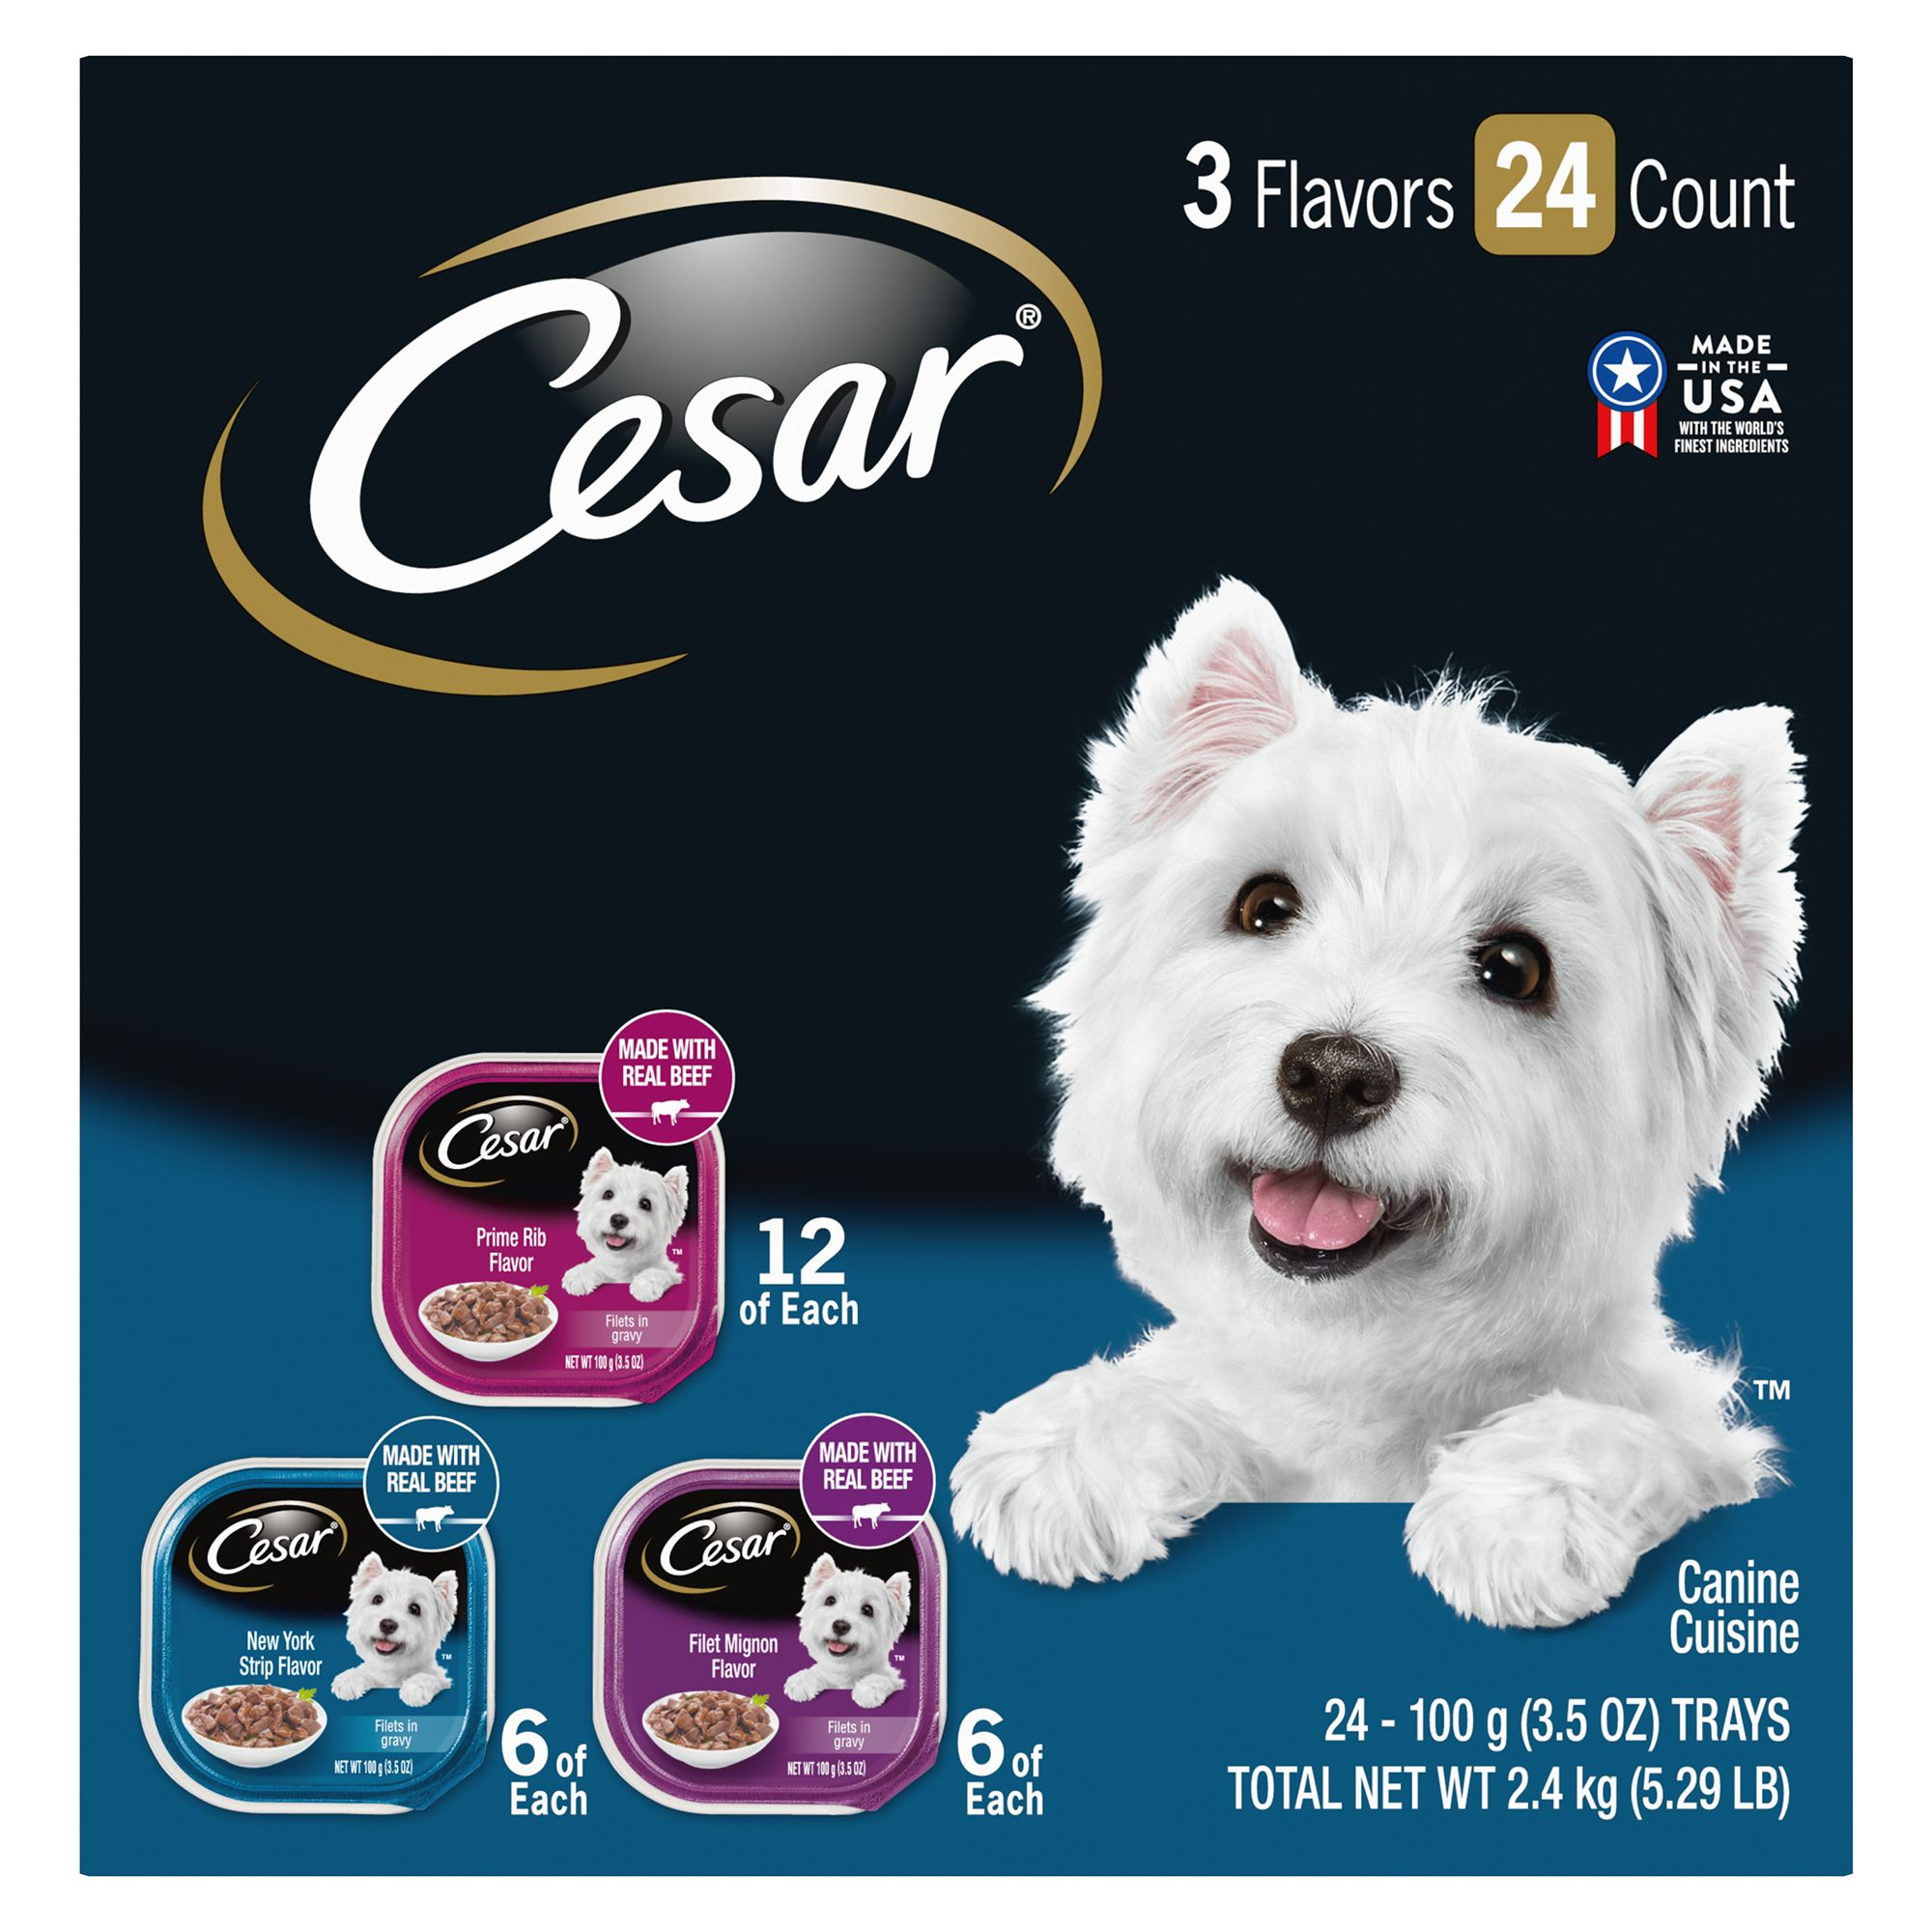 Cesar Small Breed Dry Dog Food Standard Packaging Filet Mignon 12 lbs.